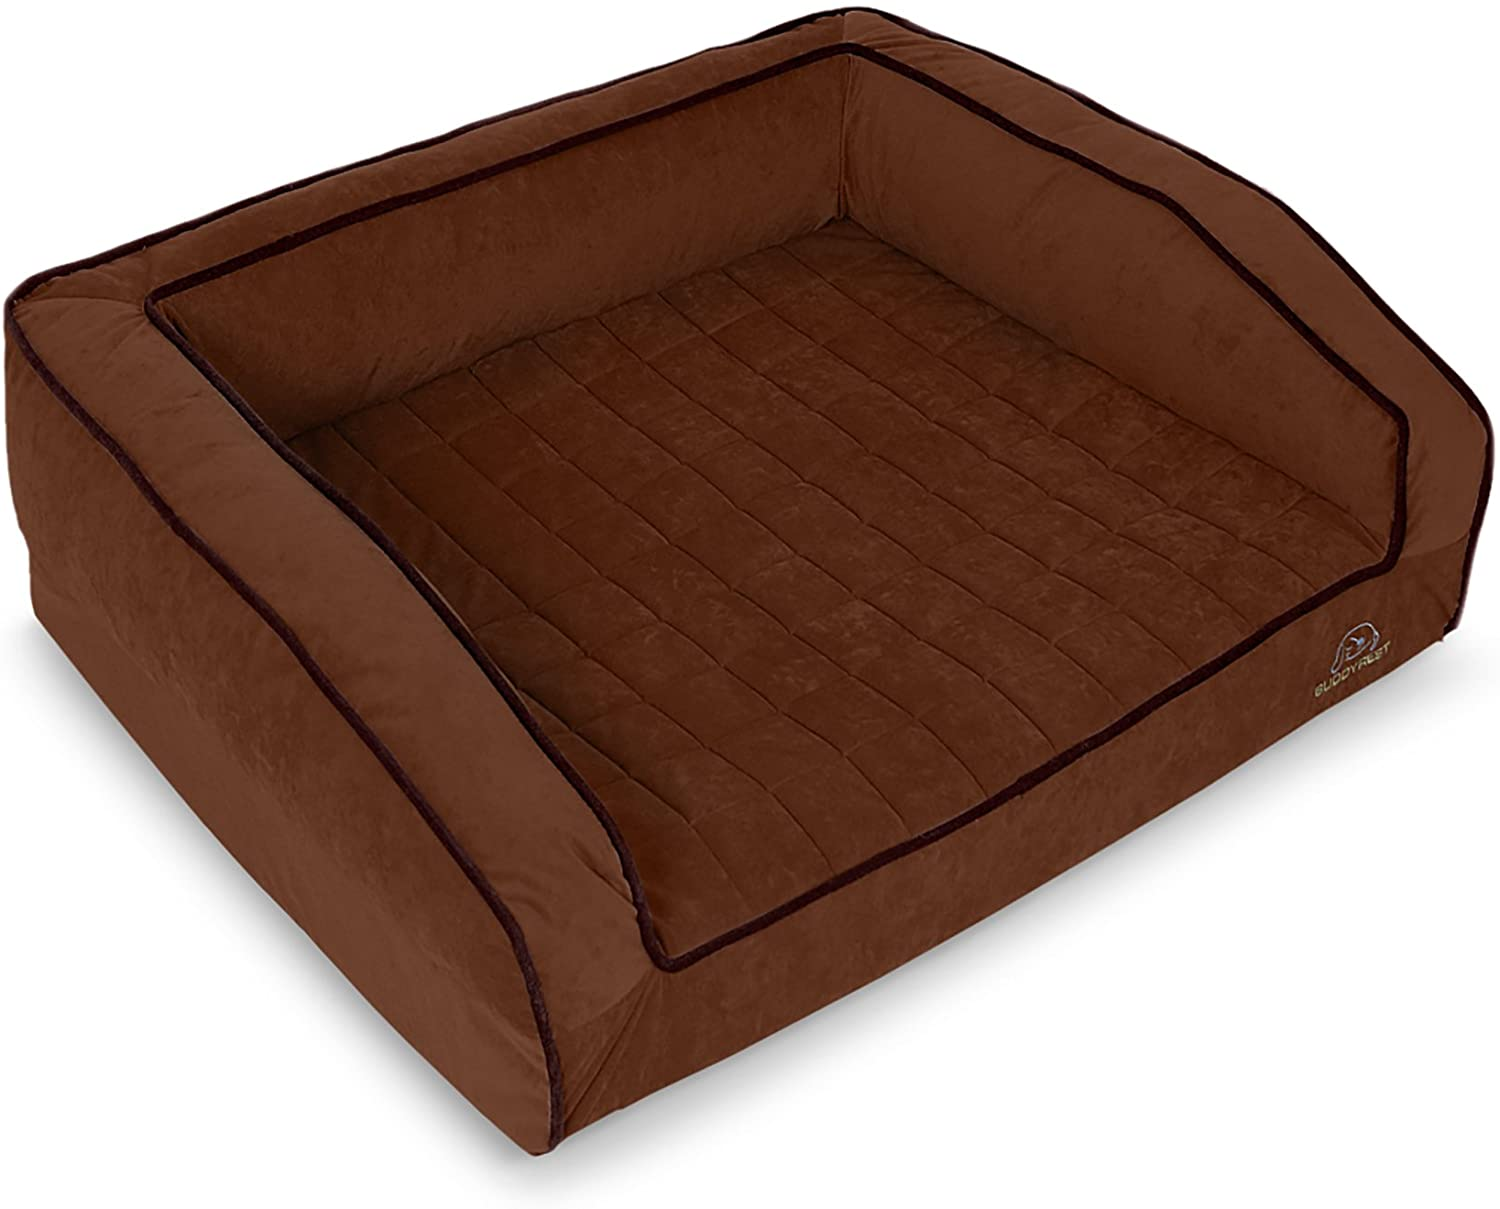 BUDDYREST, Crown Supreme Memory Foam Dog Bed, Cutting Edge True Cool Memory Foam, Scientifically Calibrated to Promote Joint Health, Handmade in The USA